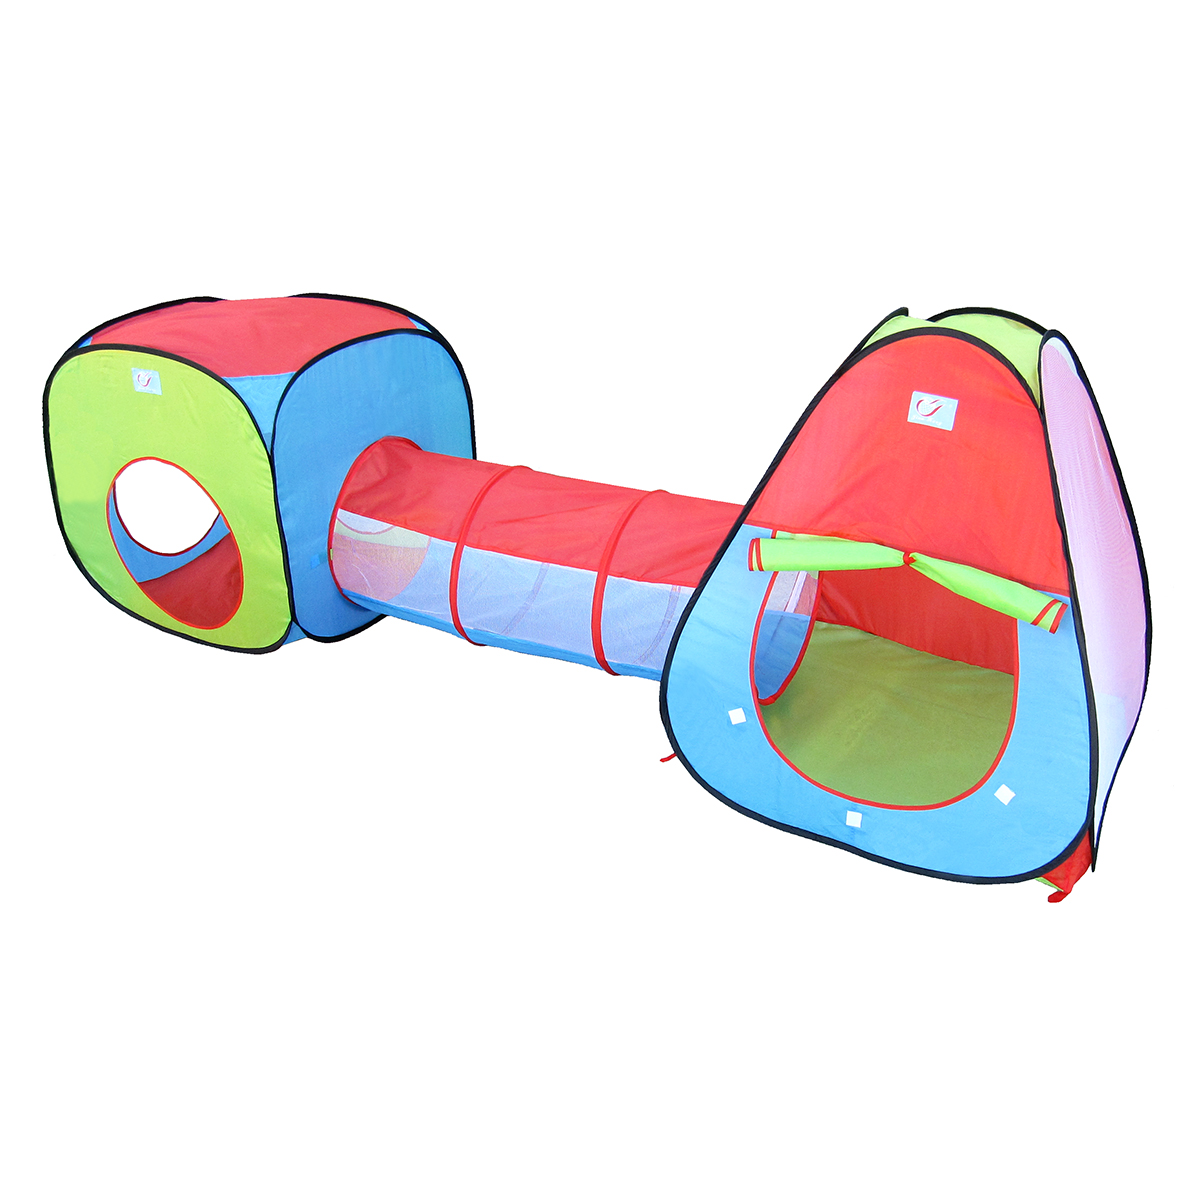 Tents and Tunnel Play Set